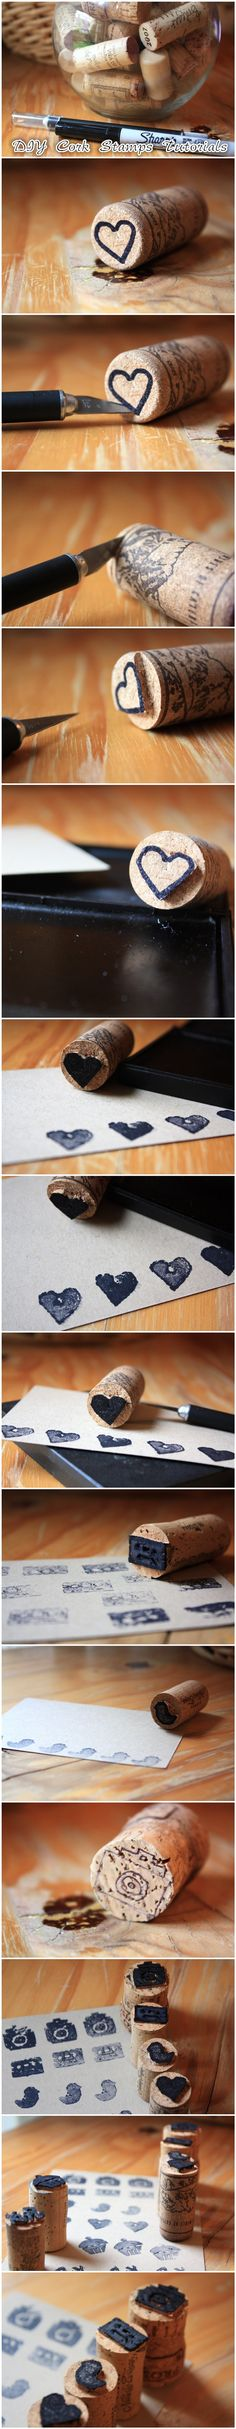 15 Creative DIY Stamps For Fabric And More-usefuldiyprojects (6)